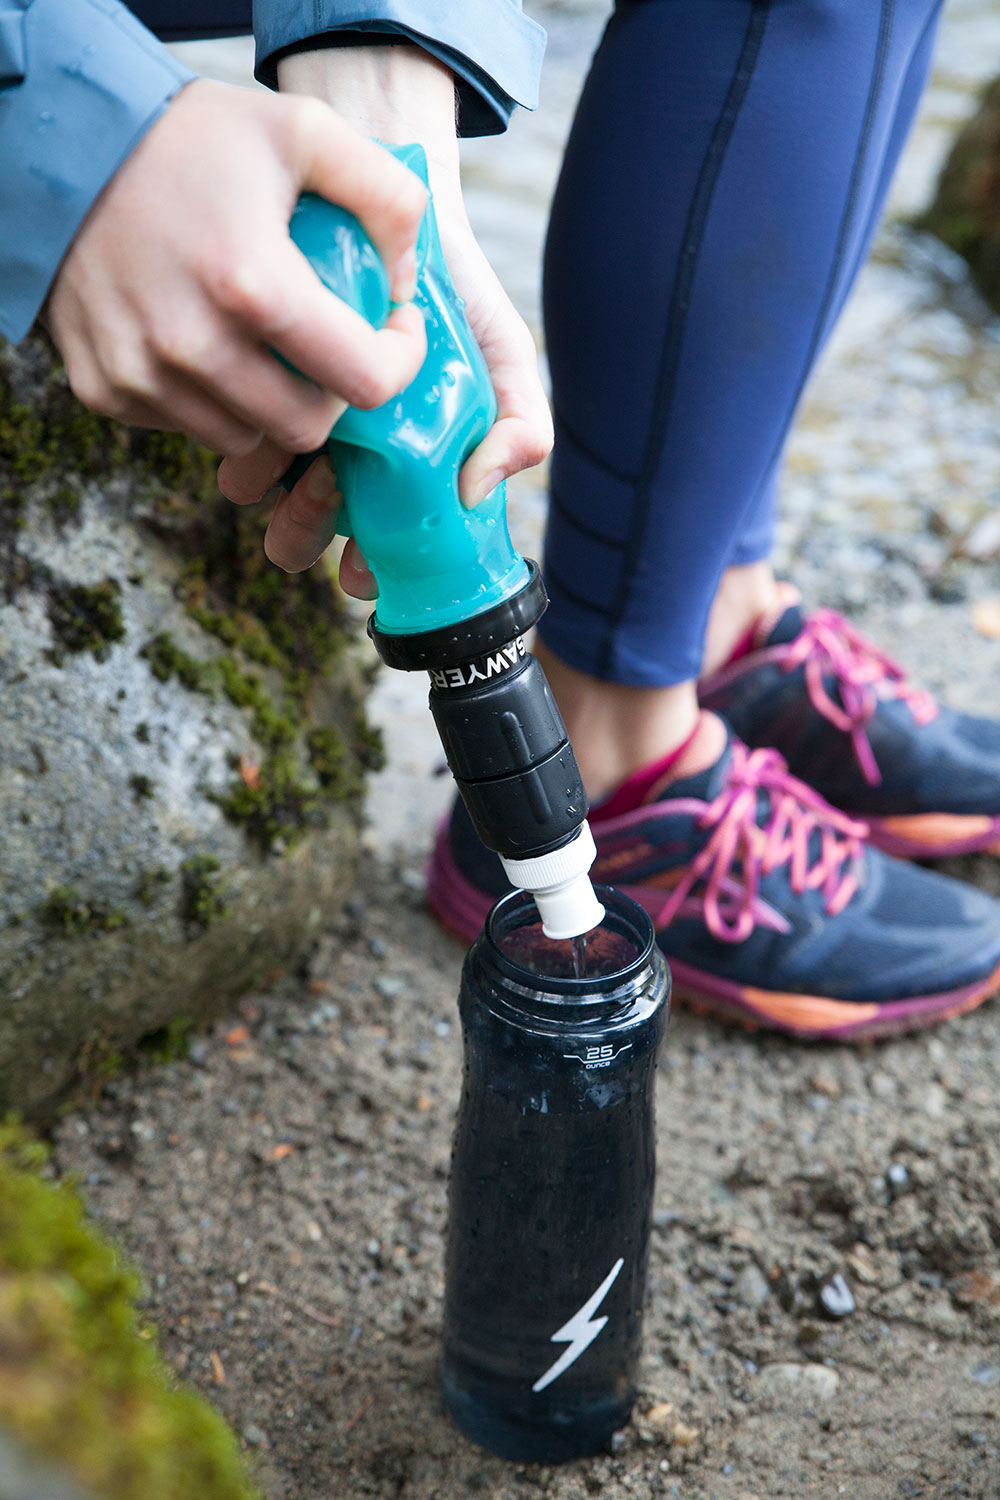 A Woman Uses her Sawyer Select S1 Water Filter to Fill her Water Bottle